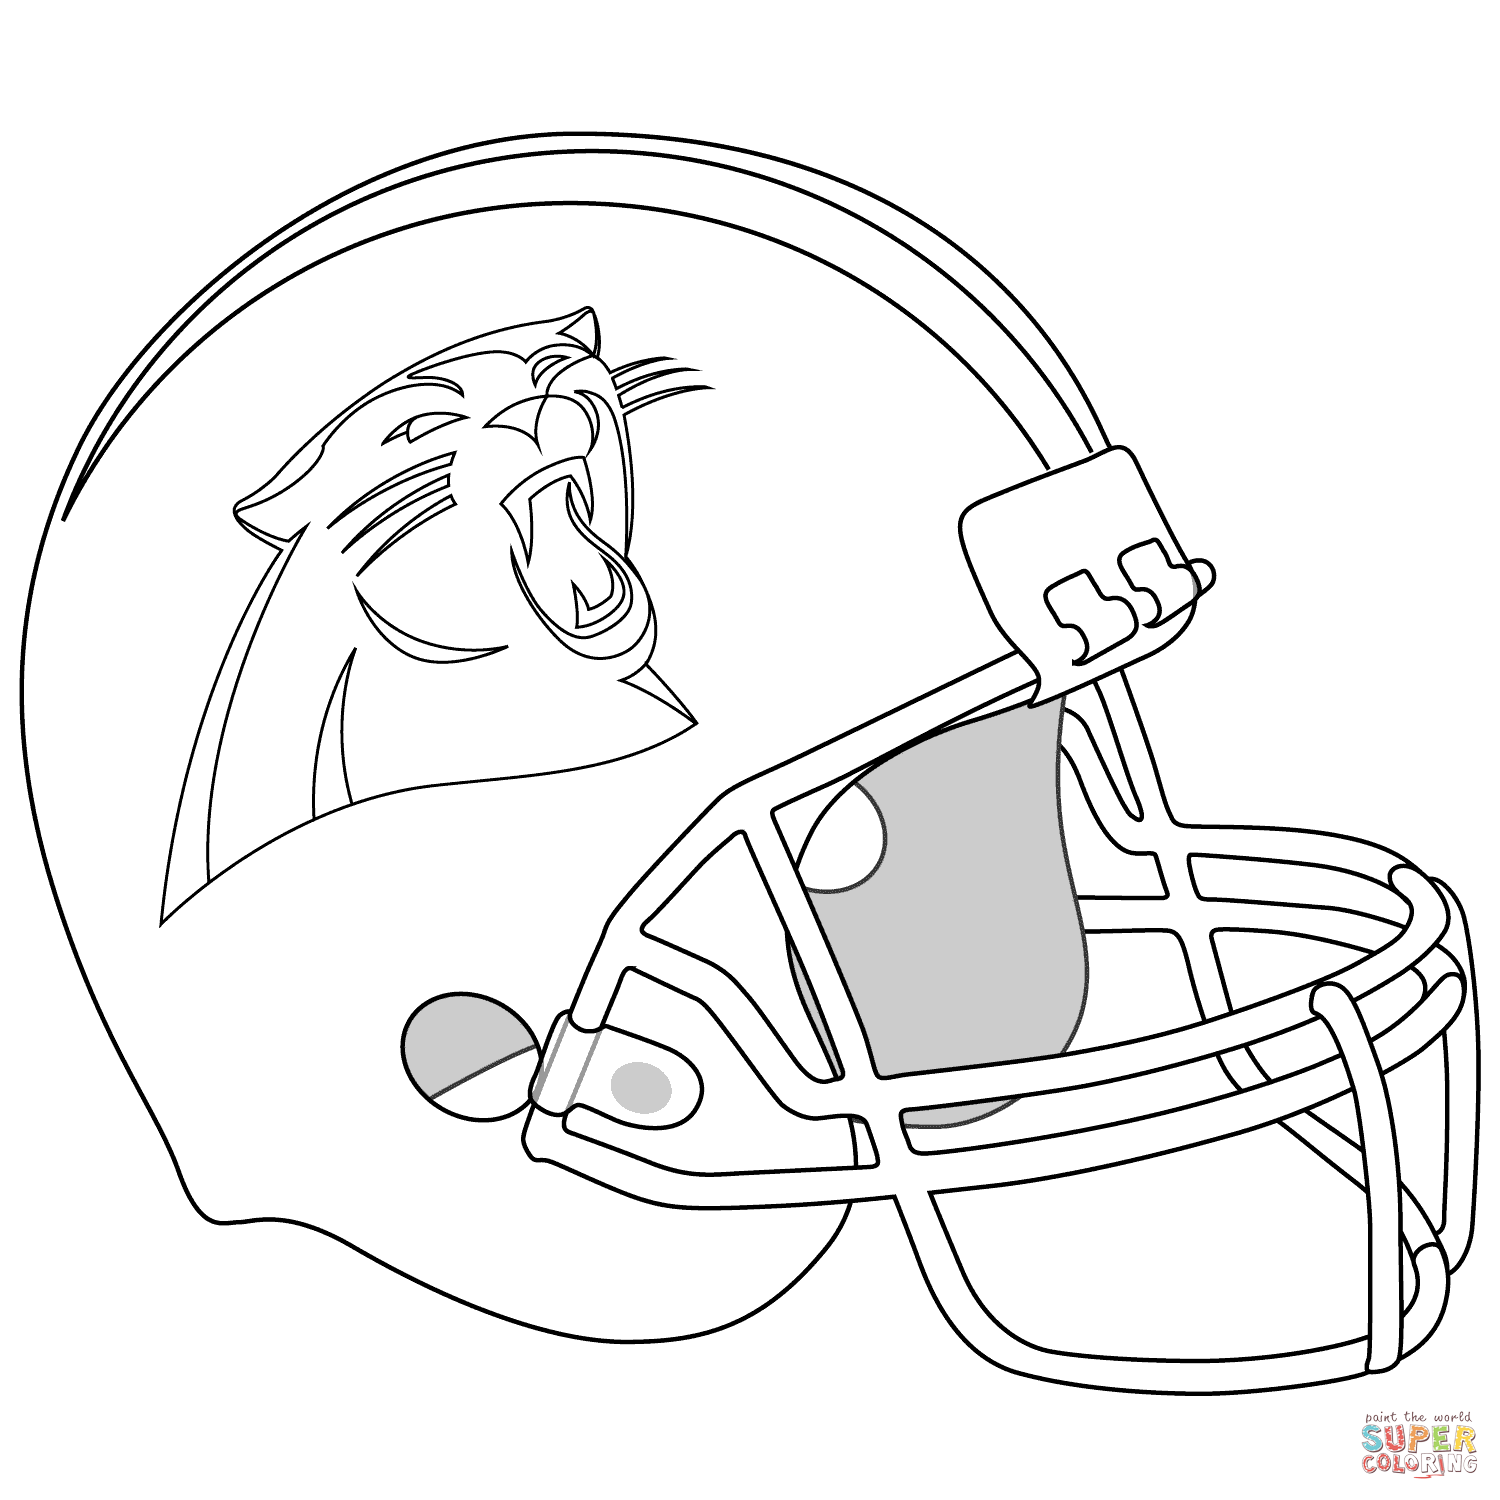 1500x1500 Coloring Pages Carolina Panthers Coloring Pages Helmet Page